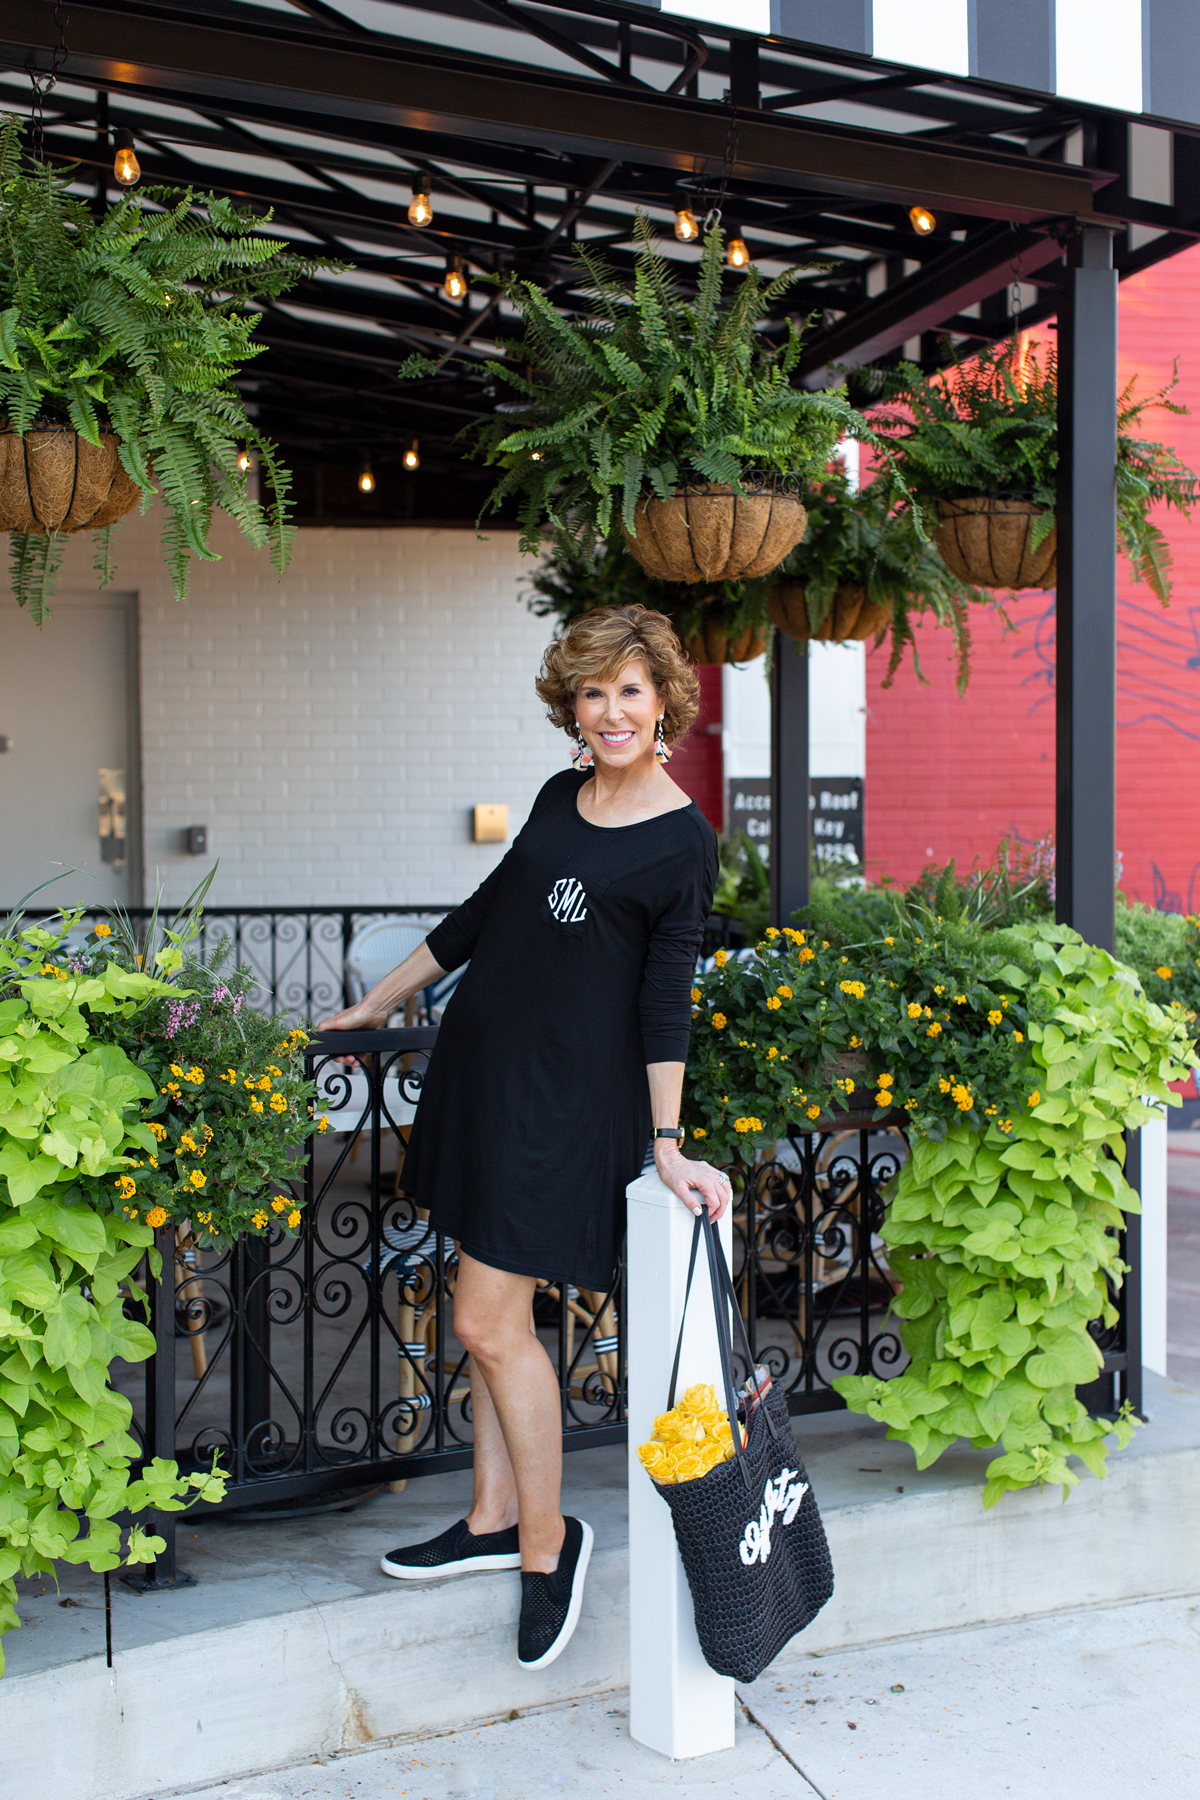 woman in black monogrammed dress by a restaurant patio